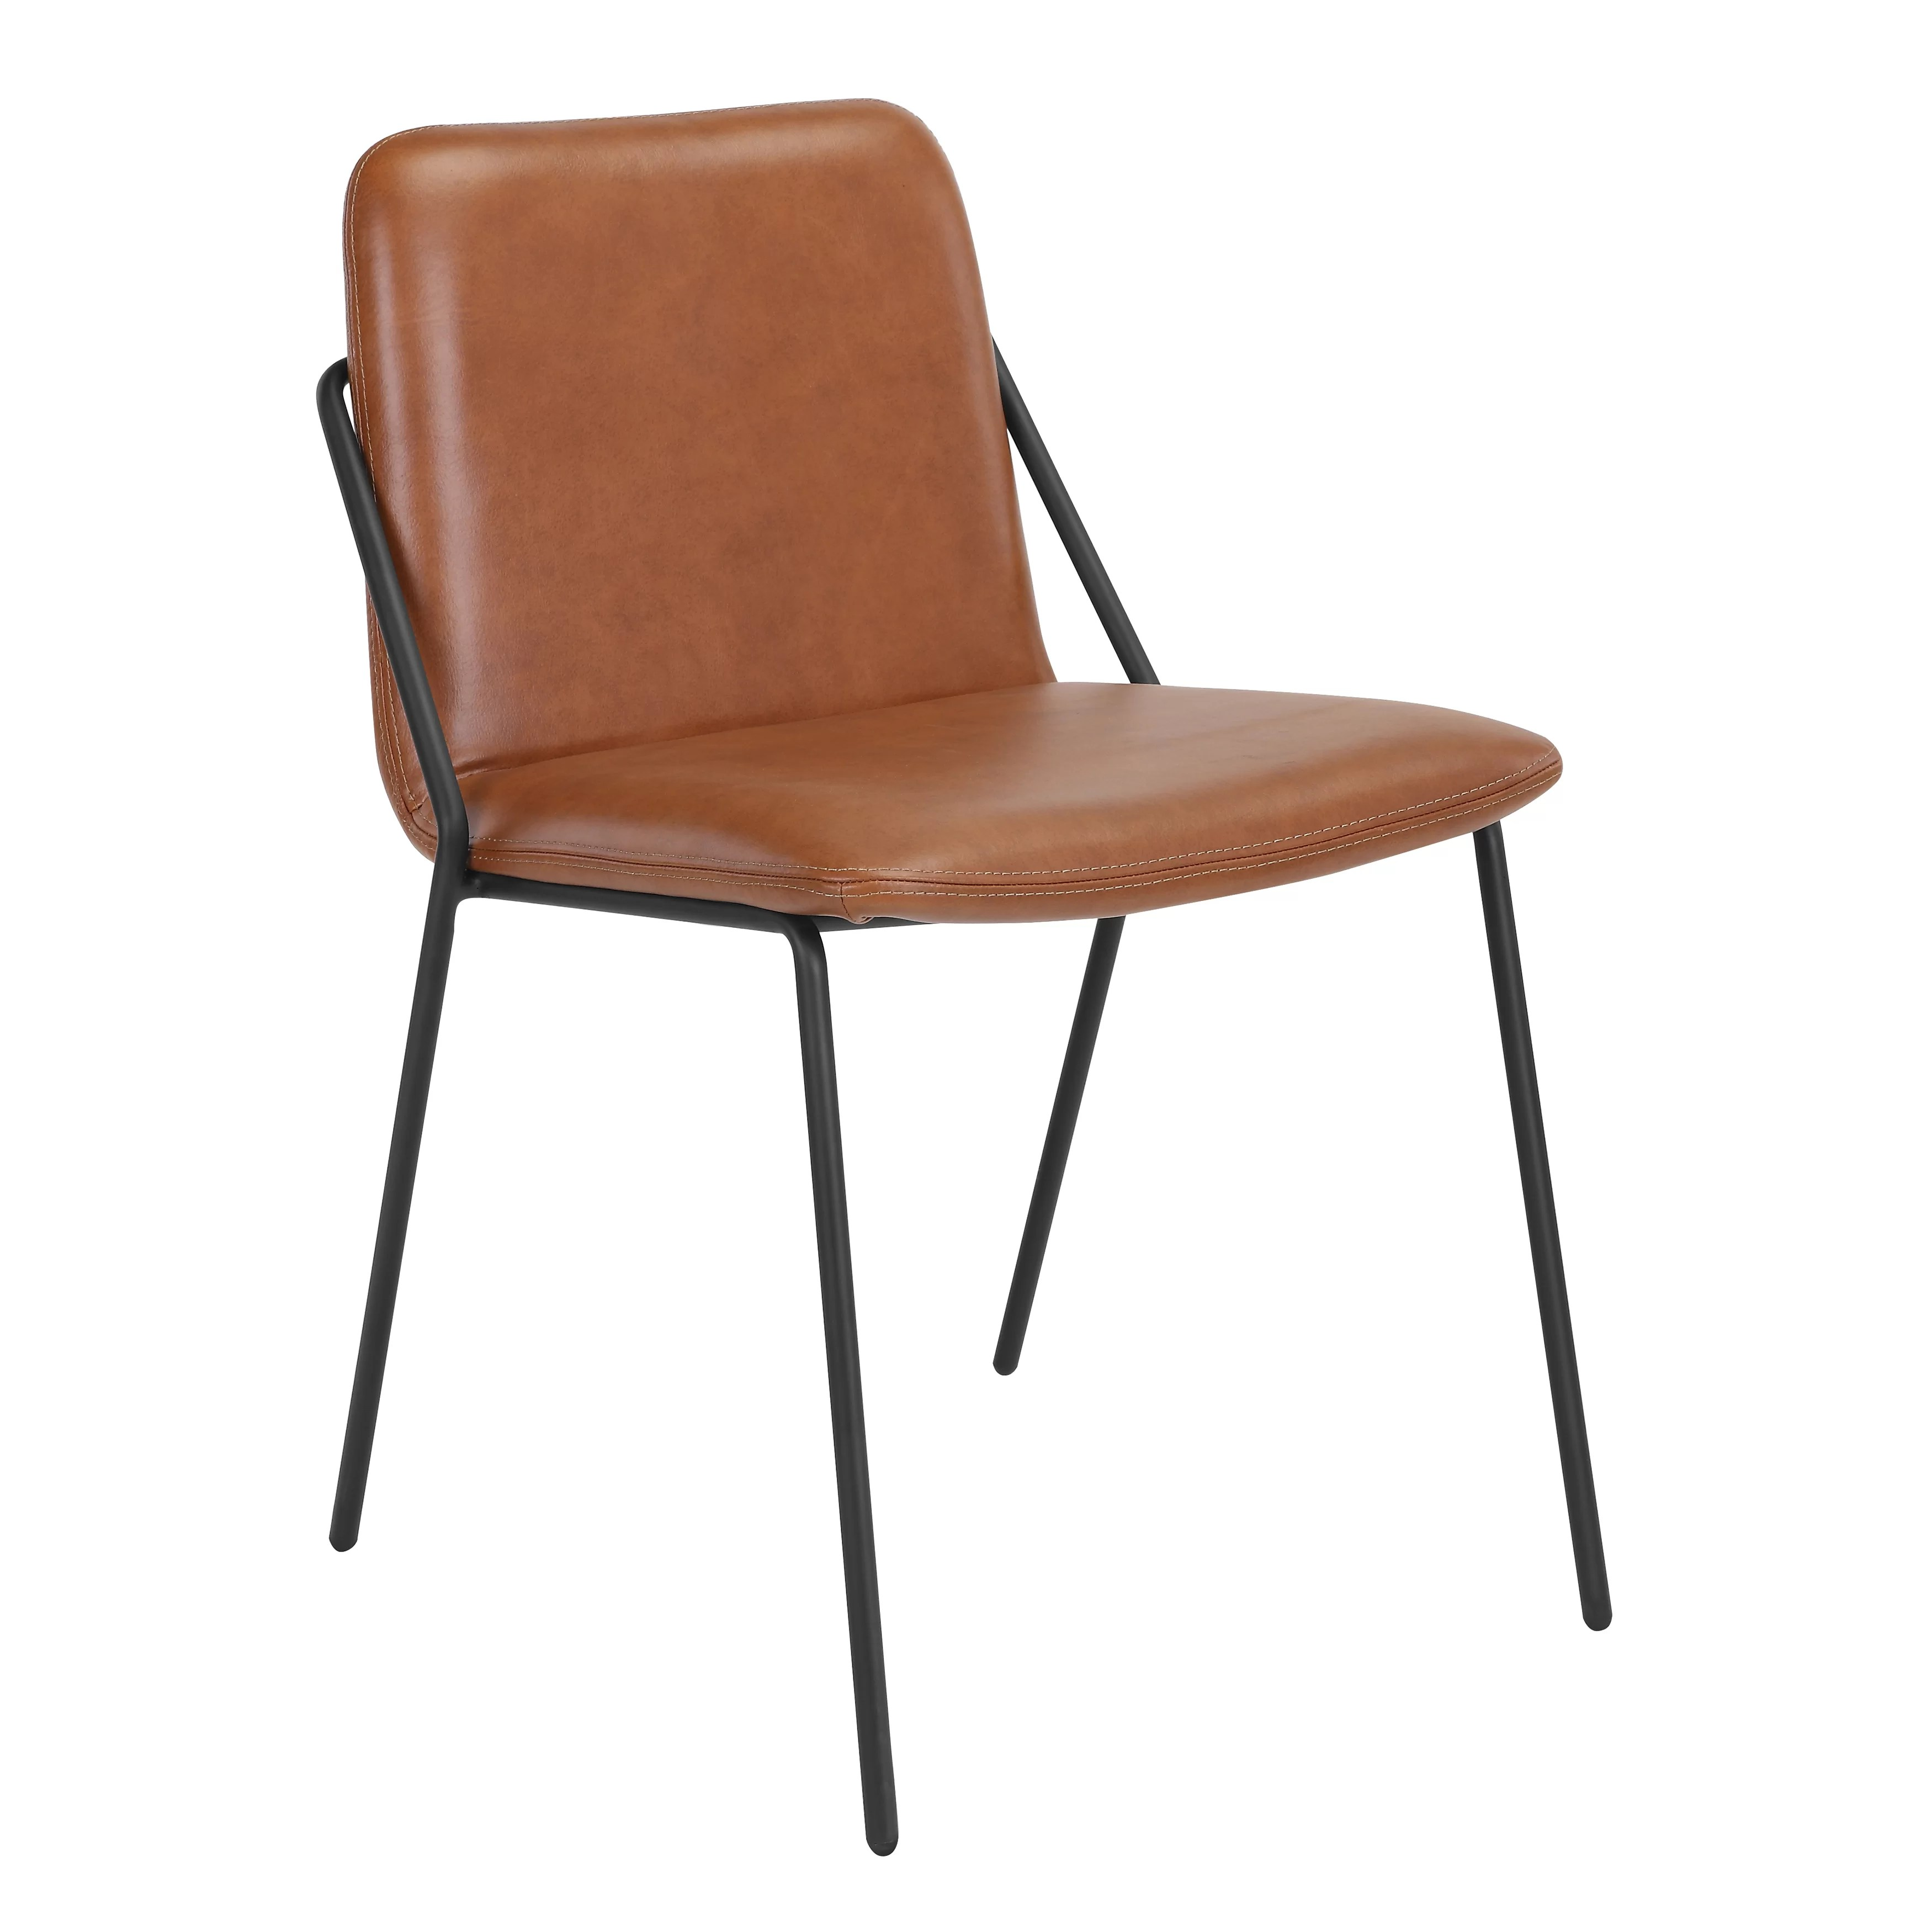 m.a.d. Furniture Sling Side Chair & Reviews